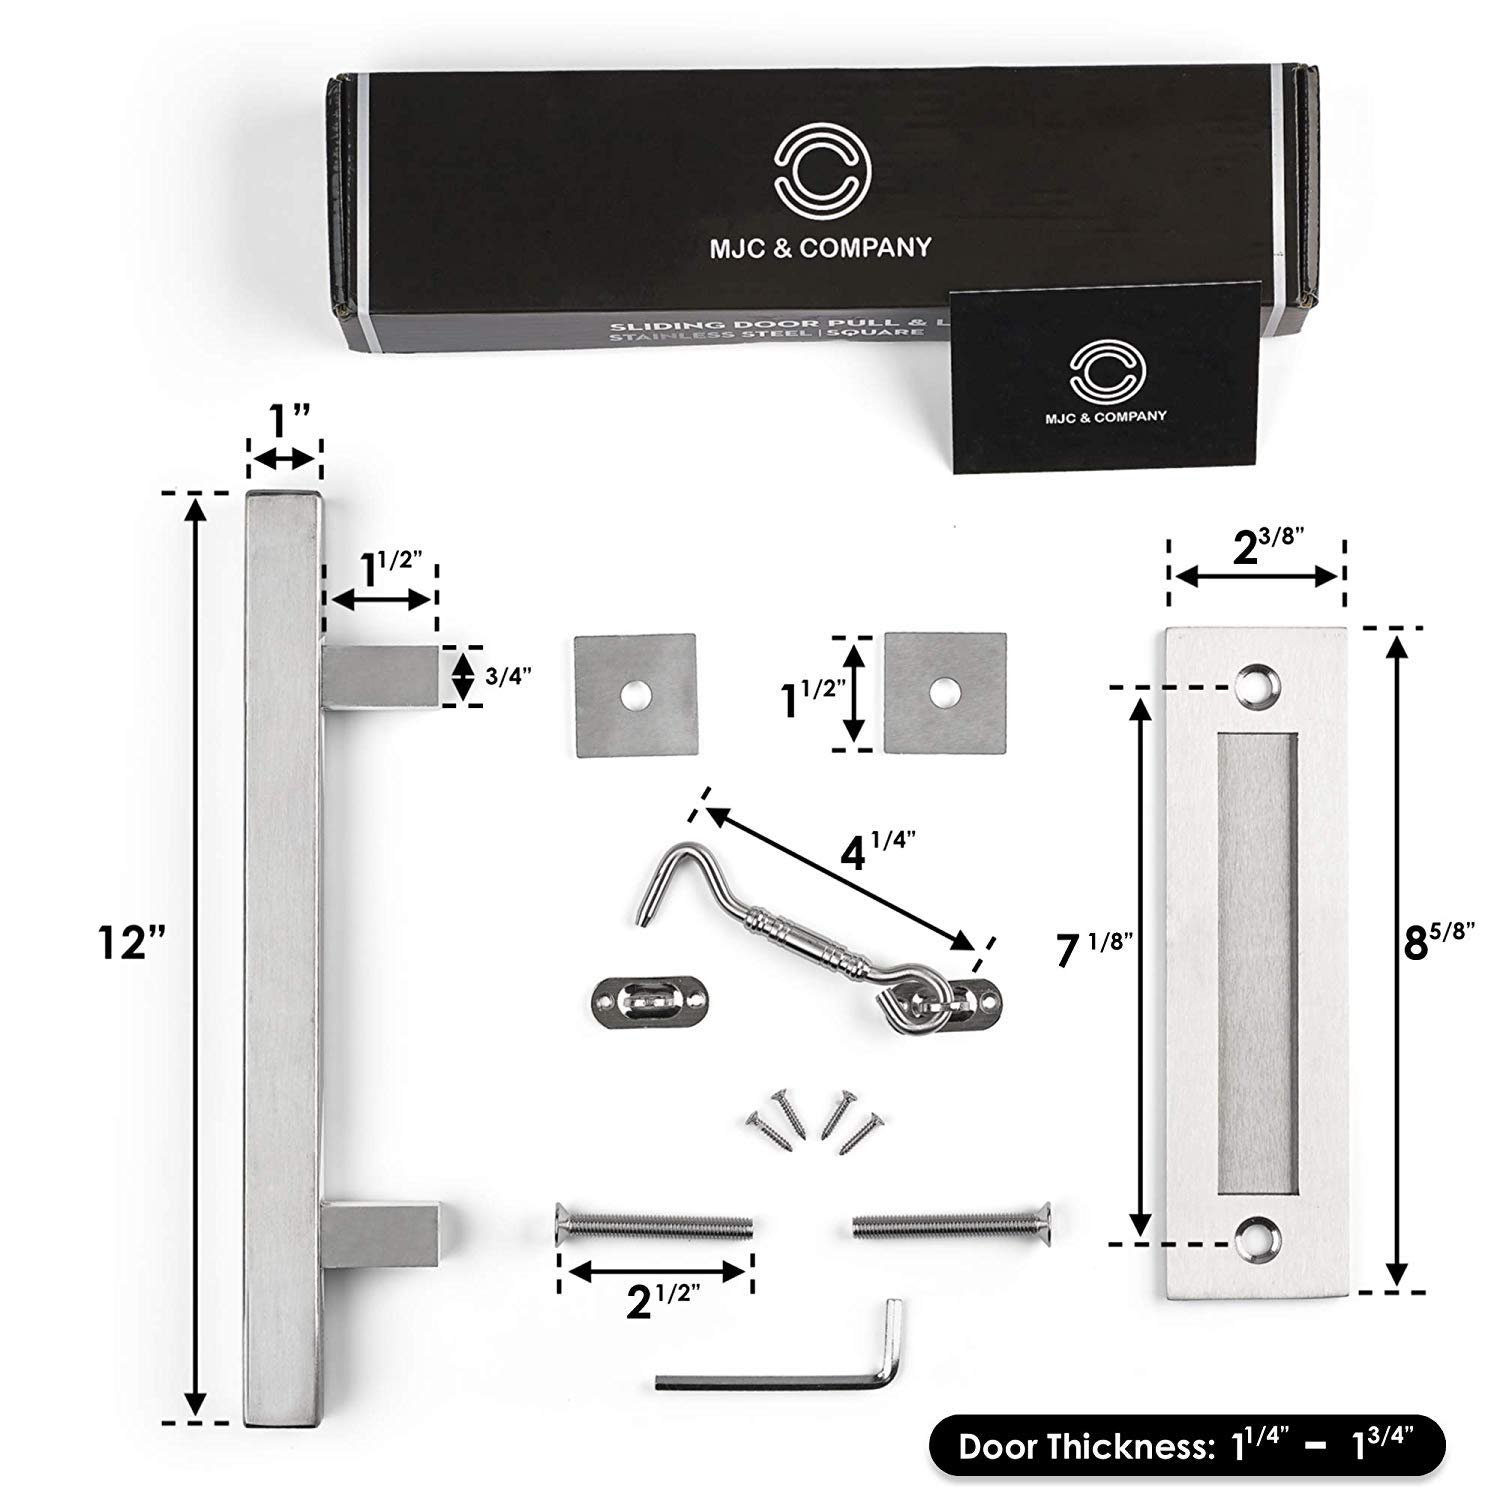 12 Round Sliding Barn Door Handle Pull Kit with Flush Mount Plate /& Cabin Hook Lock Strong Industrial Pull /& Privacy Latch Heavy-Duty Modern Matte Black Hardware Set MJC /& Company